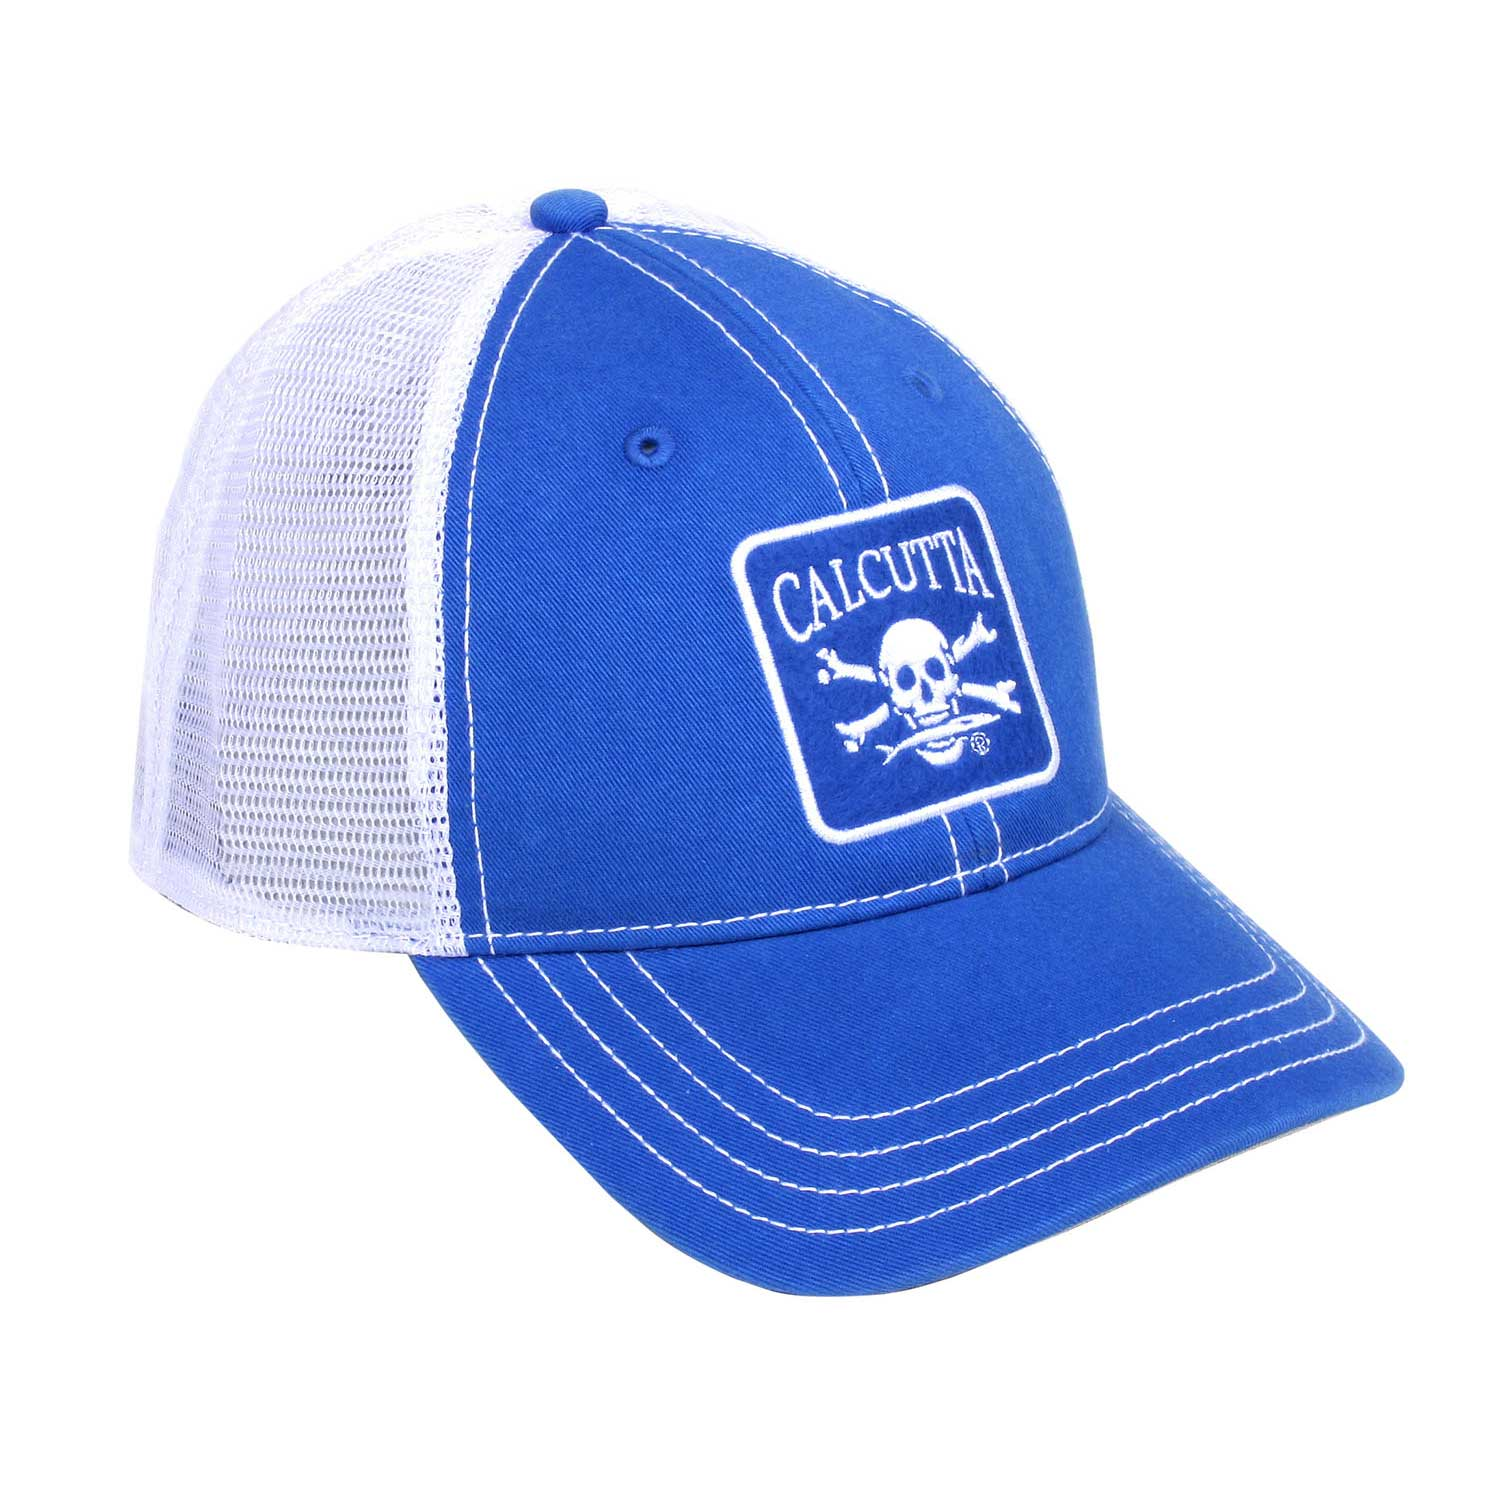 150b8cbda1b25 Calcutta BRS108058RB Patch Cap in Royal Blue